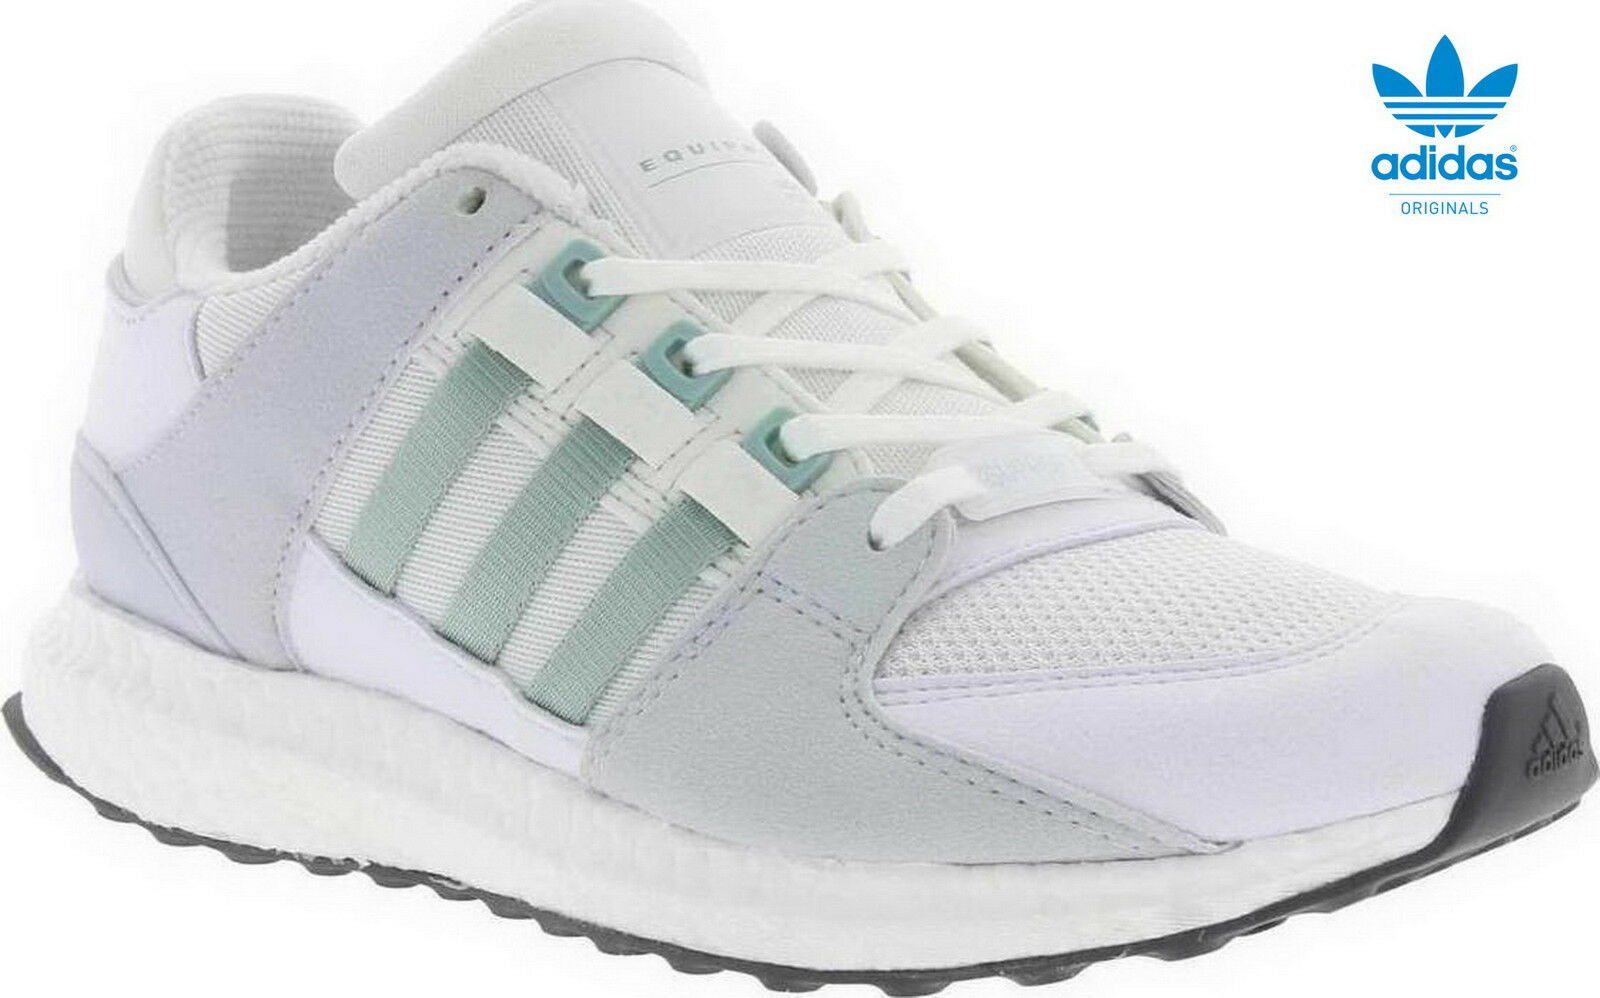 Zapatos promocionales para hombres y mujeres adidas Equipment Support Ultra Schuhe Damen Sneaker Laufschuhe BB2320